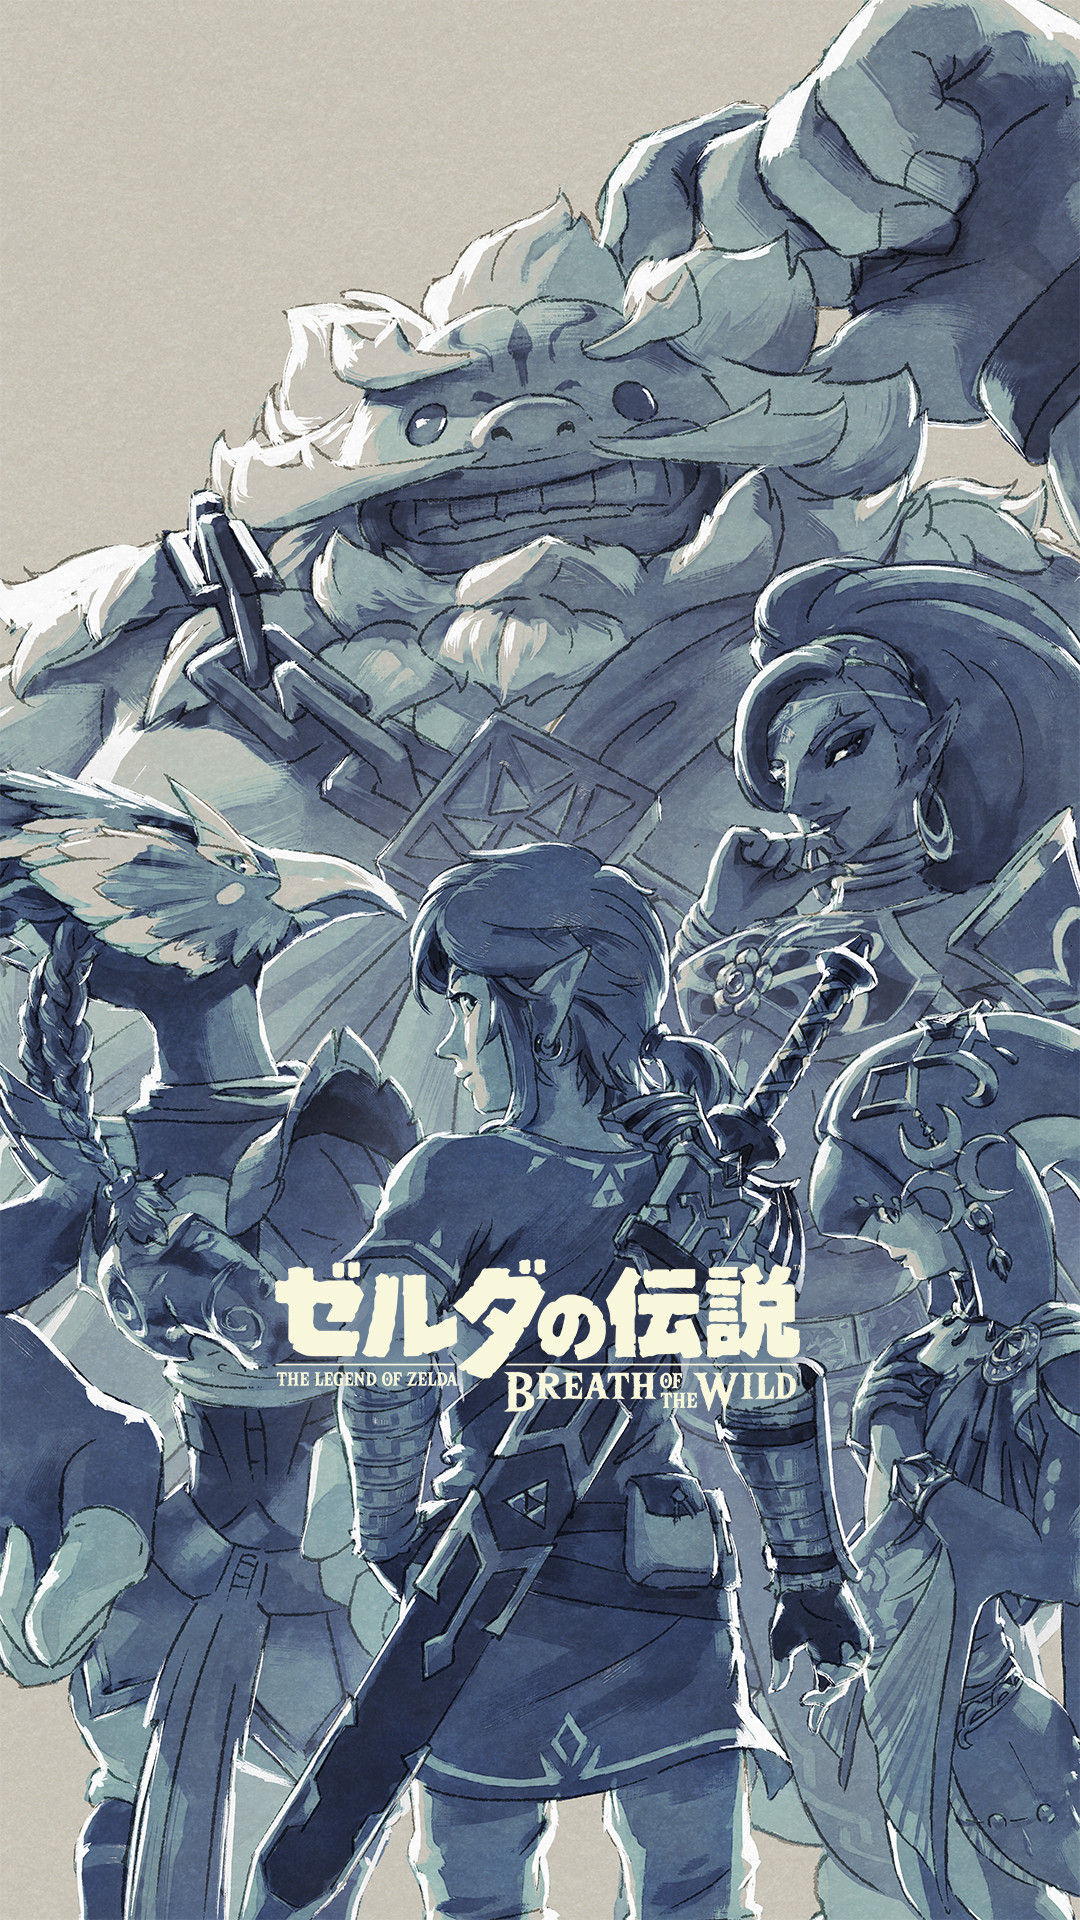 You can download both mobile and desktop wallpapers in the resolution of  your choice on the official Japanese Breath of the Wild page here.